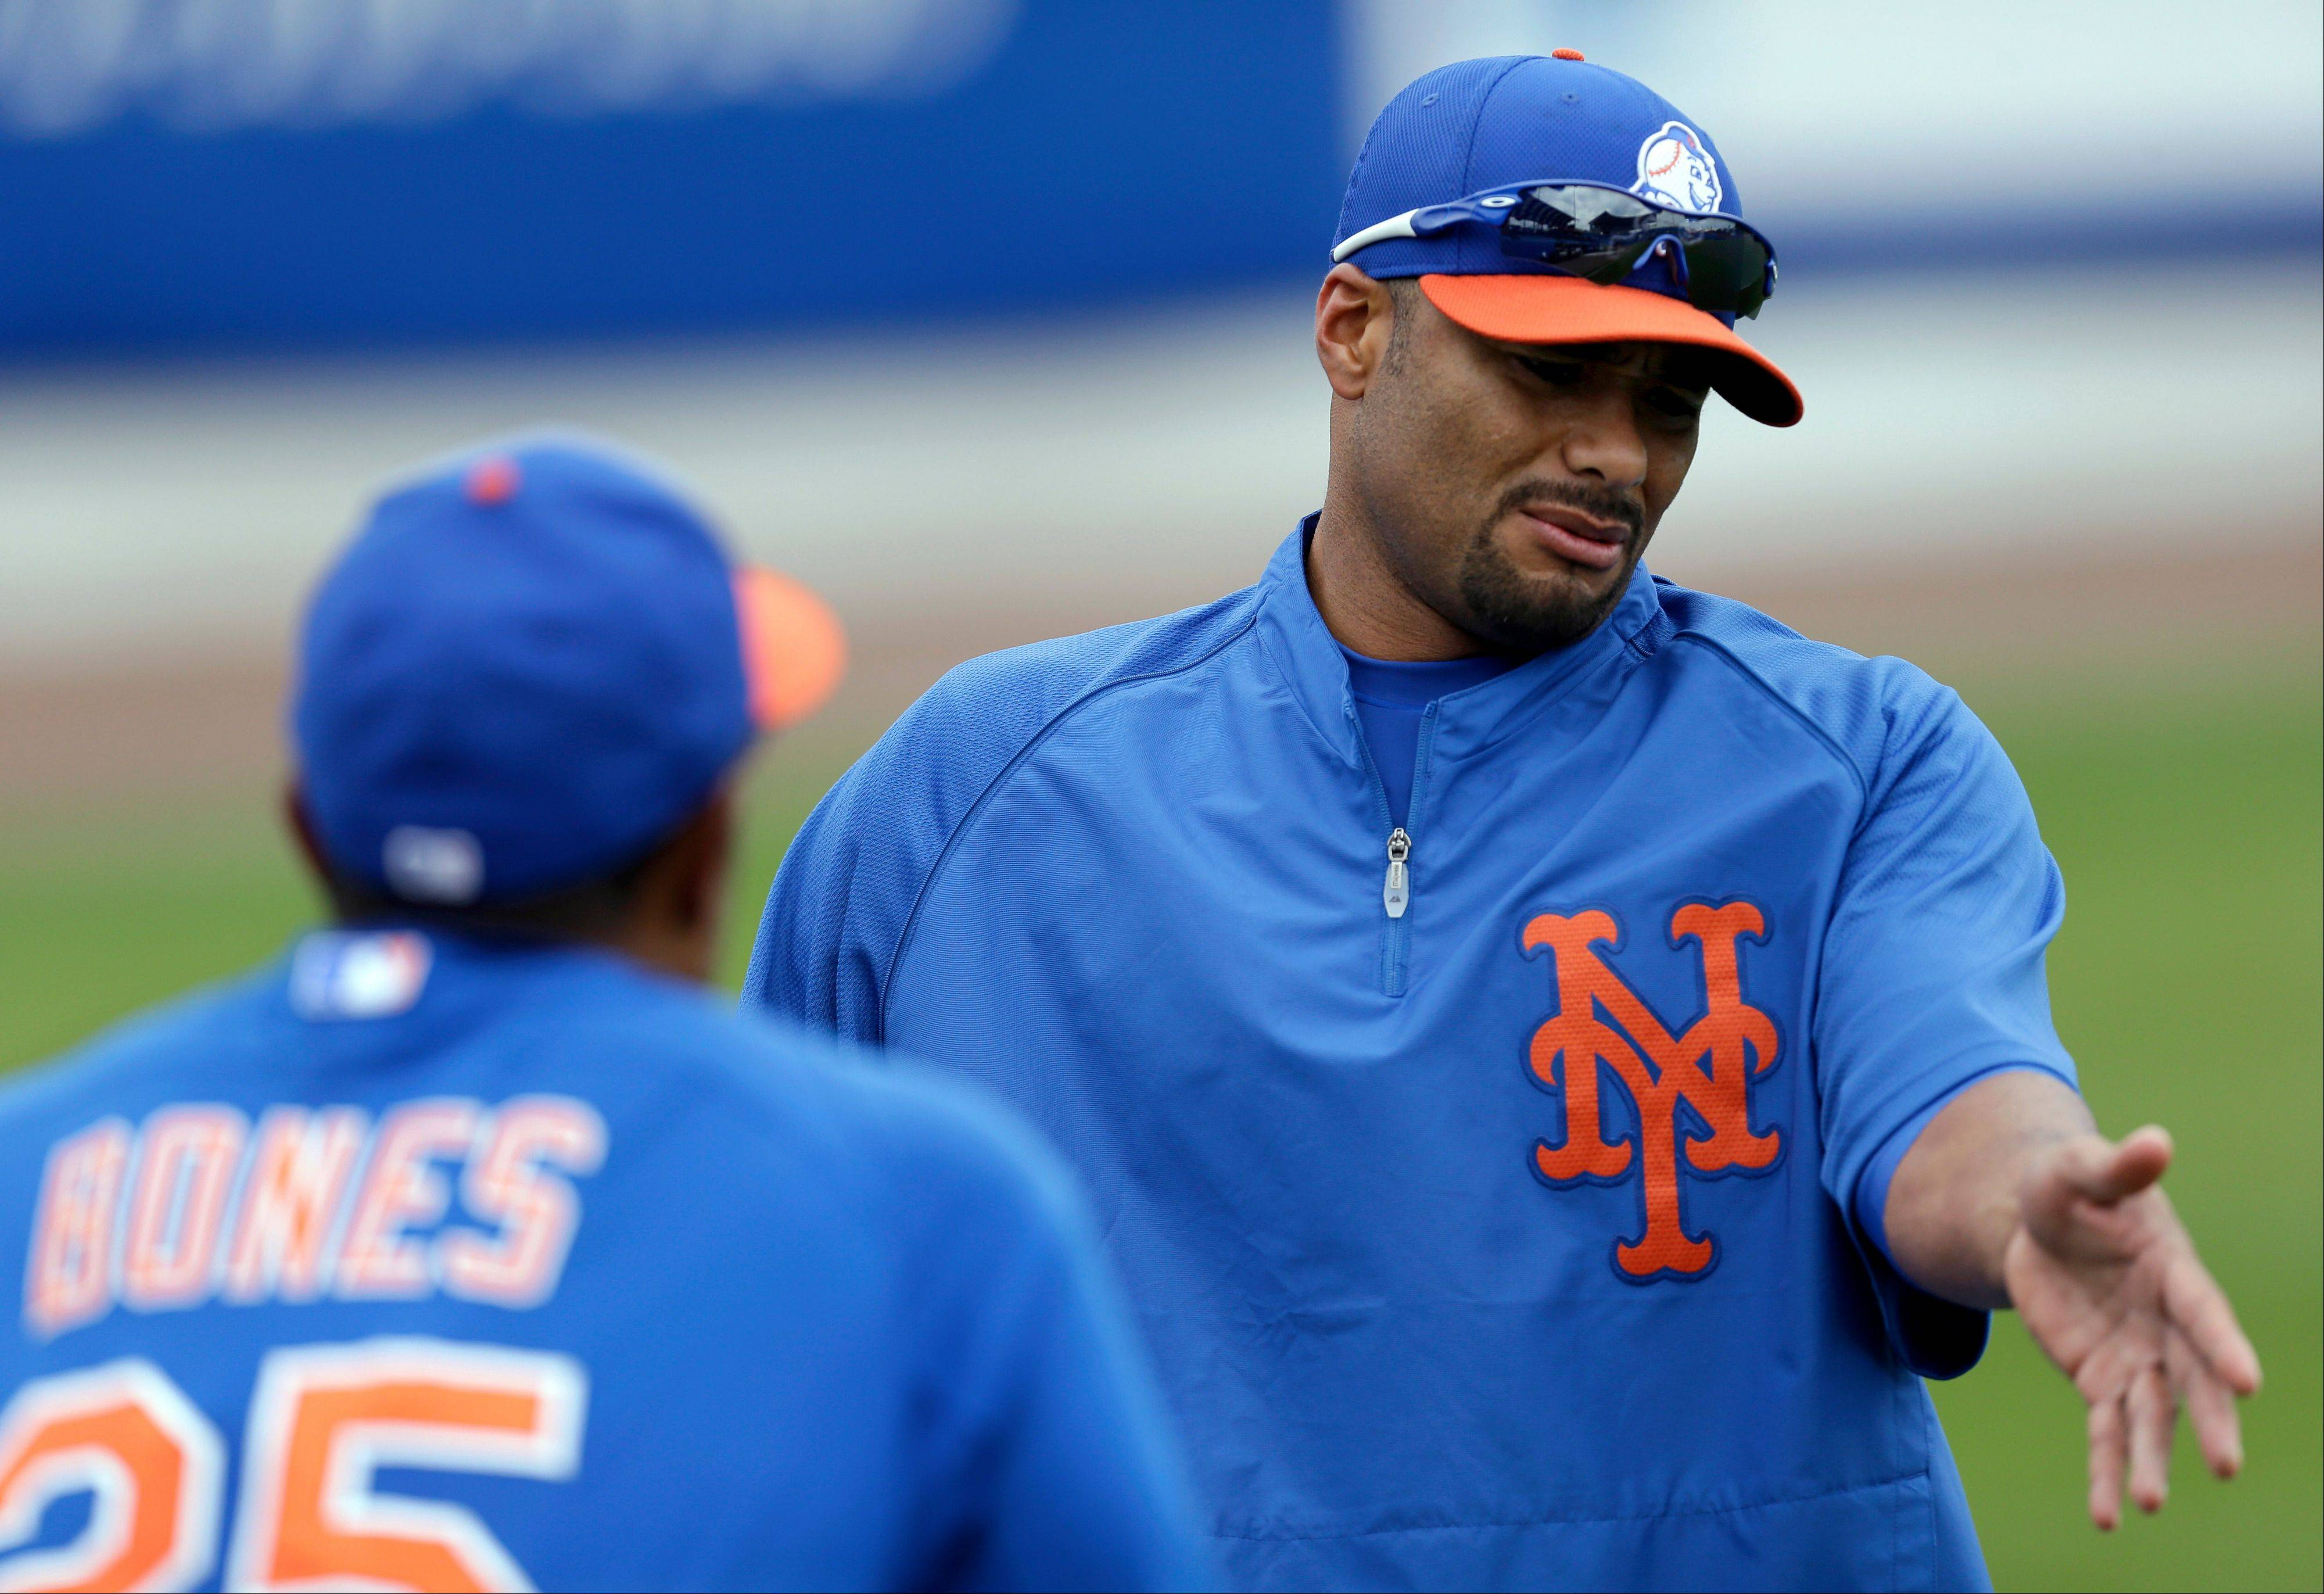 In this March 1, 2013, photo, New York Mets pitcher Johan Santana, right, talks to bullpen coach Ricky Bones (25) before the Mets' spring training baseball game against the Detroit Tigers in Port St. Lucie, Fla. The Mets say Santana has injured his left shoulder again and likely will need surgery and miss the 2013 season. (AP Photo/Julio Cortez)